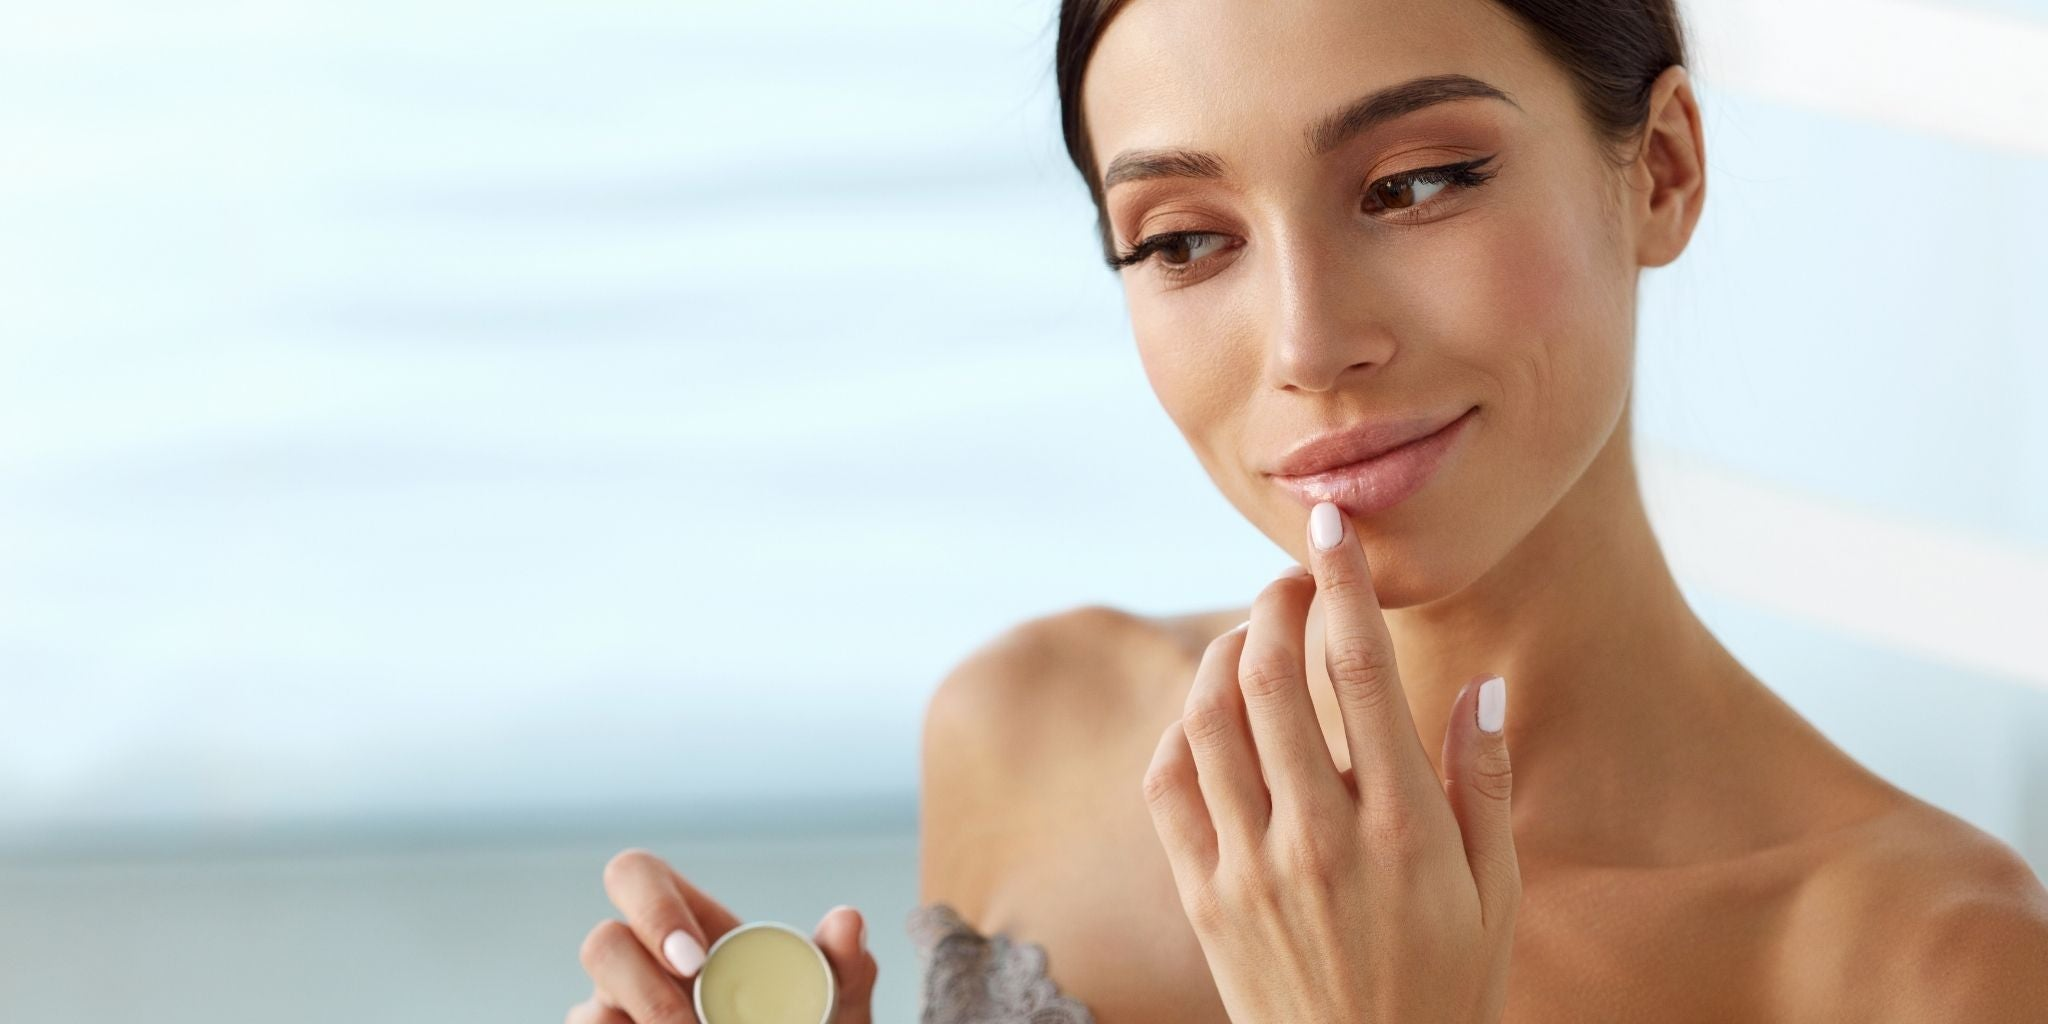 Lip Care 101: Learn How To Take Care of Your Lips